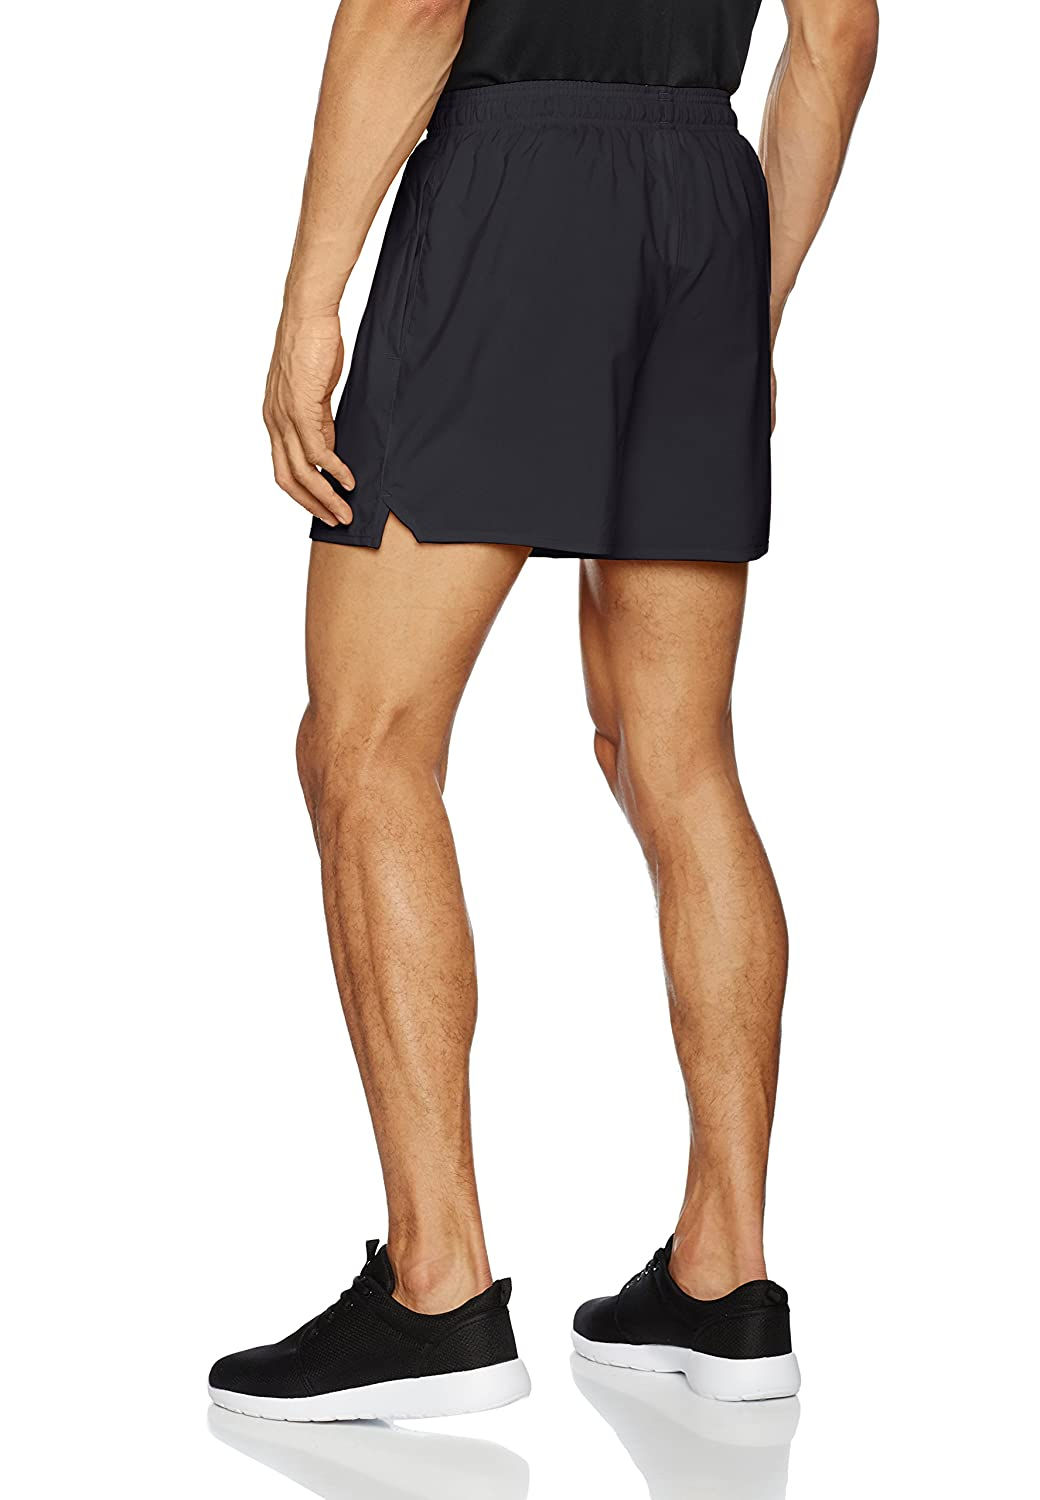 SS18 Under Armour Qualifier 15cm Woven Shorts